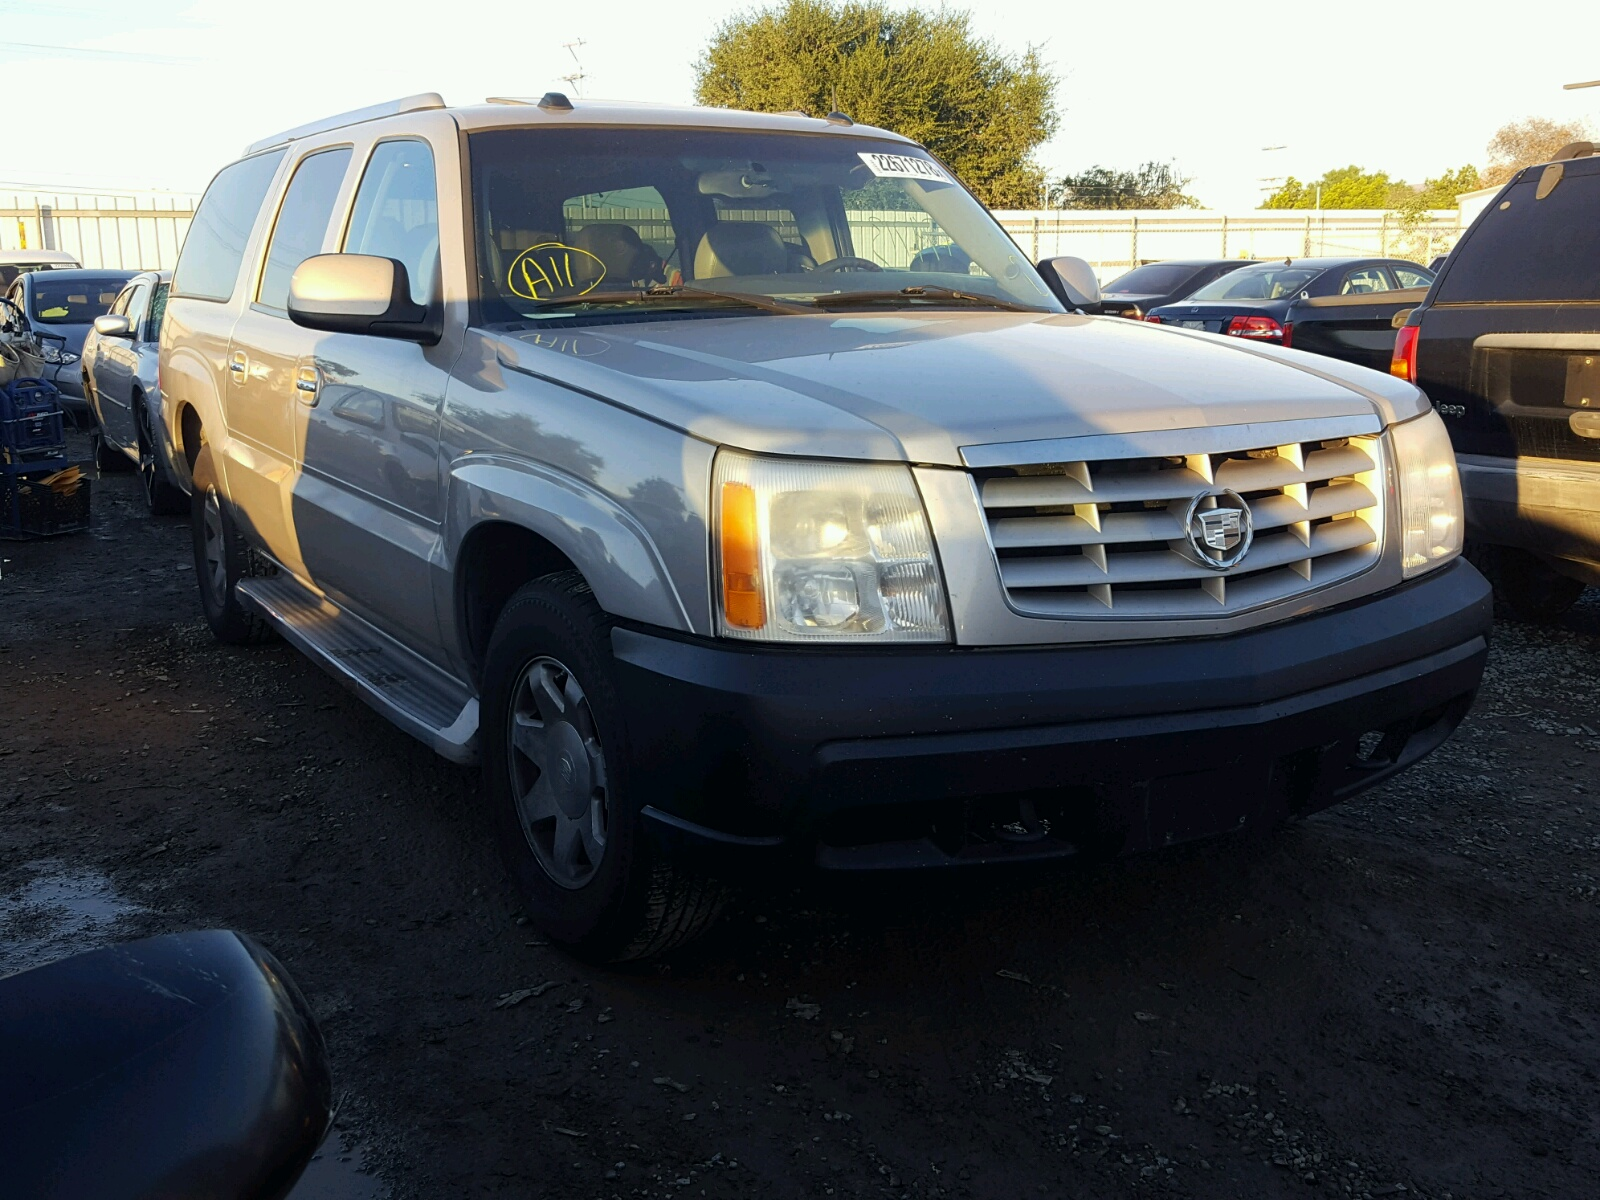 copart on auto of cadillac left auctions sale title online for in view escalade salvage dallas lot tx rebuilt carfinder black l cert en